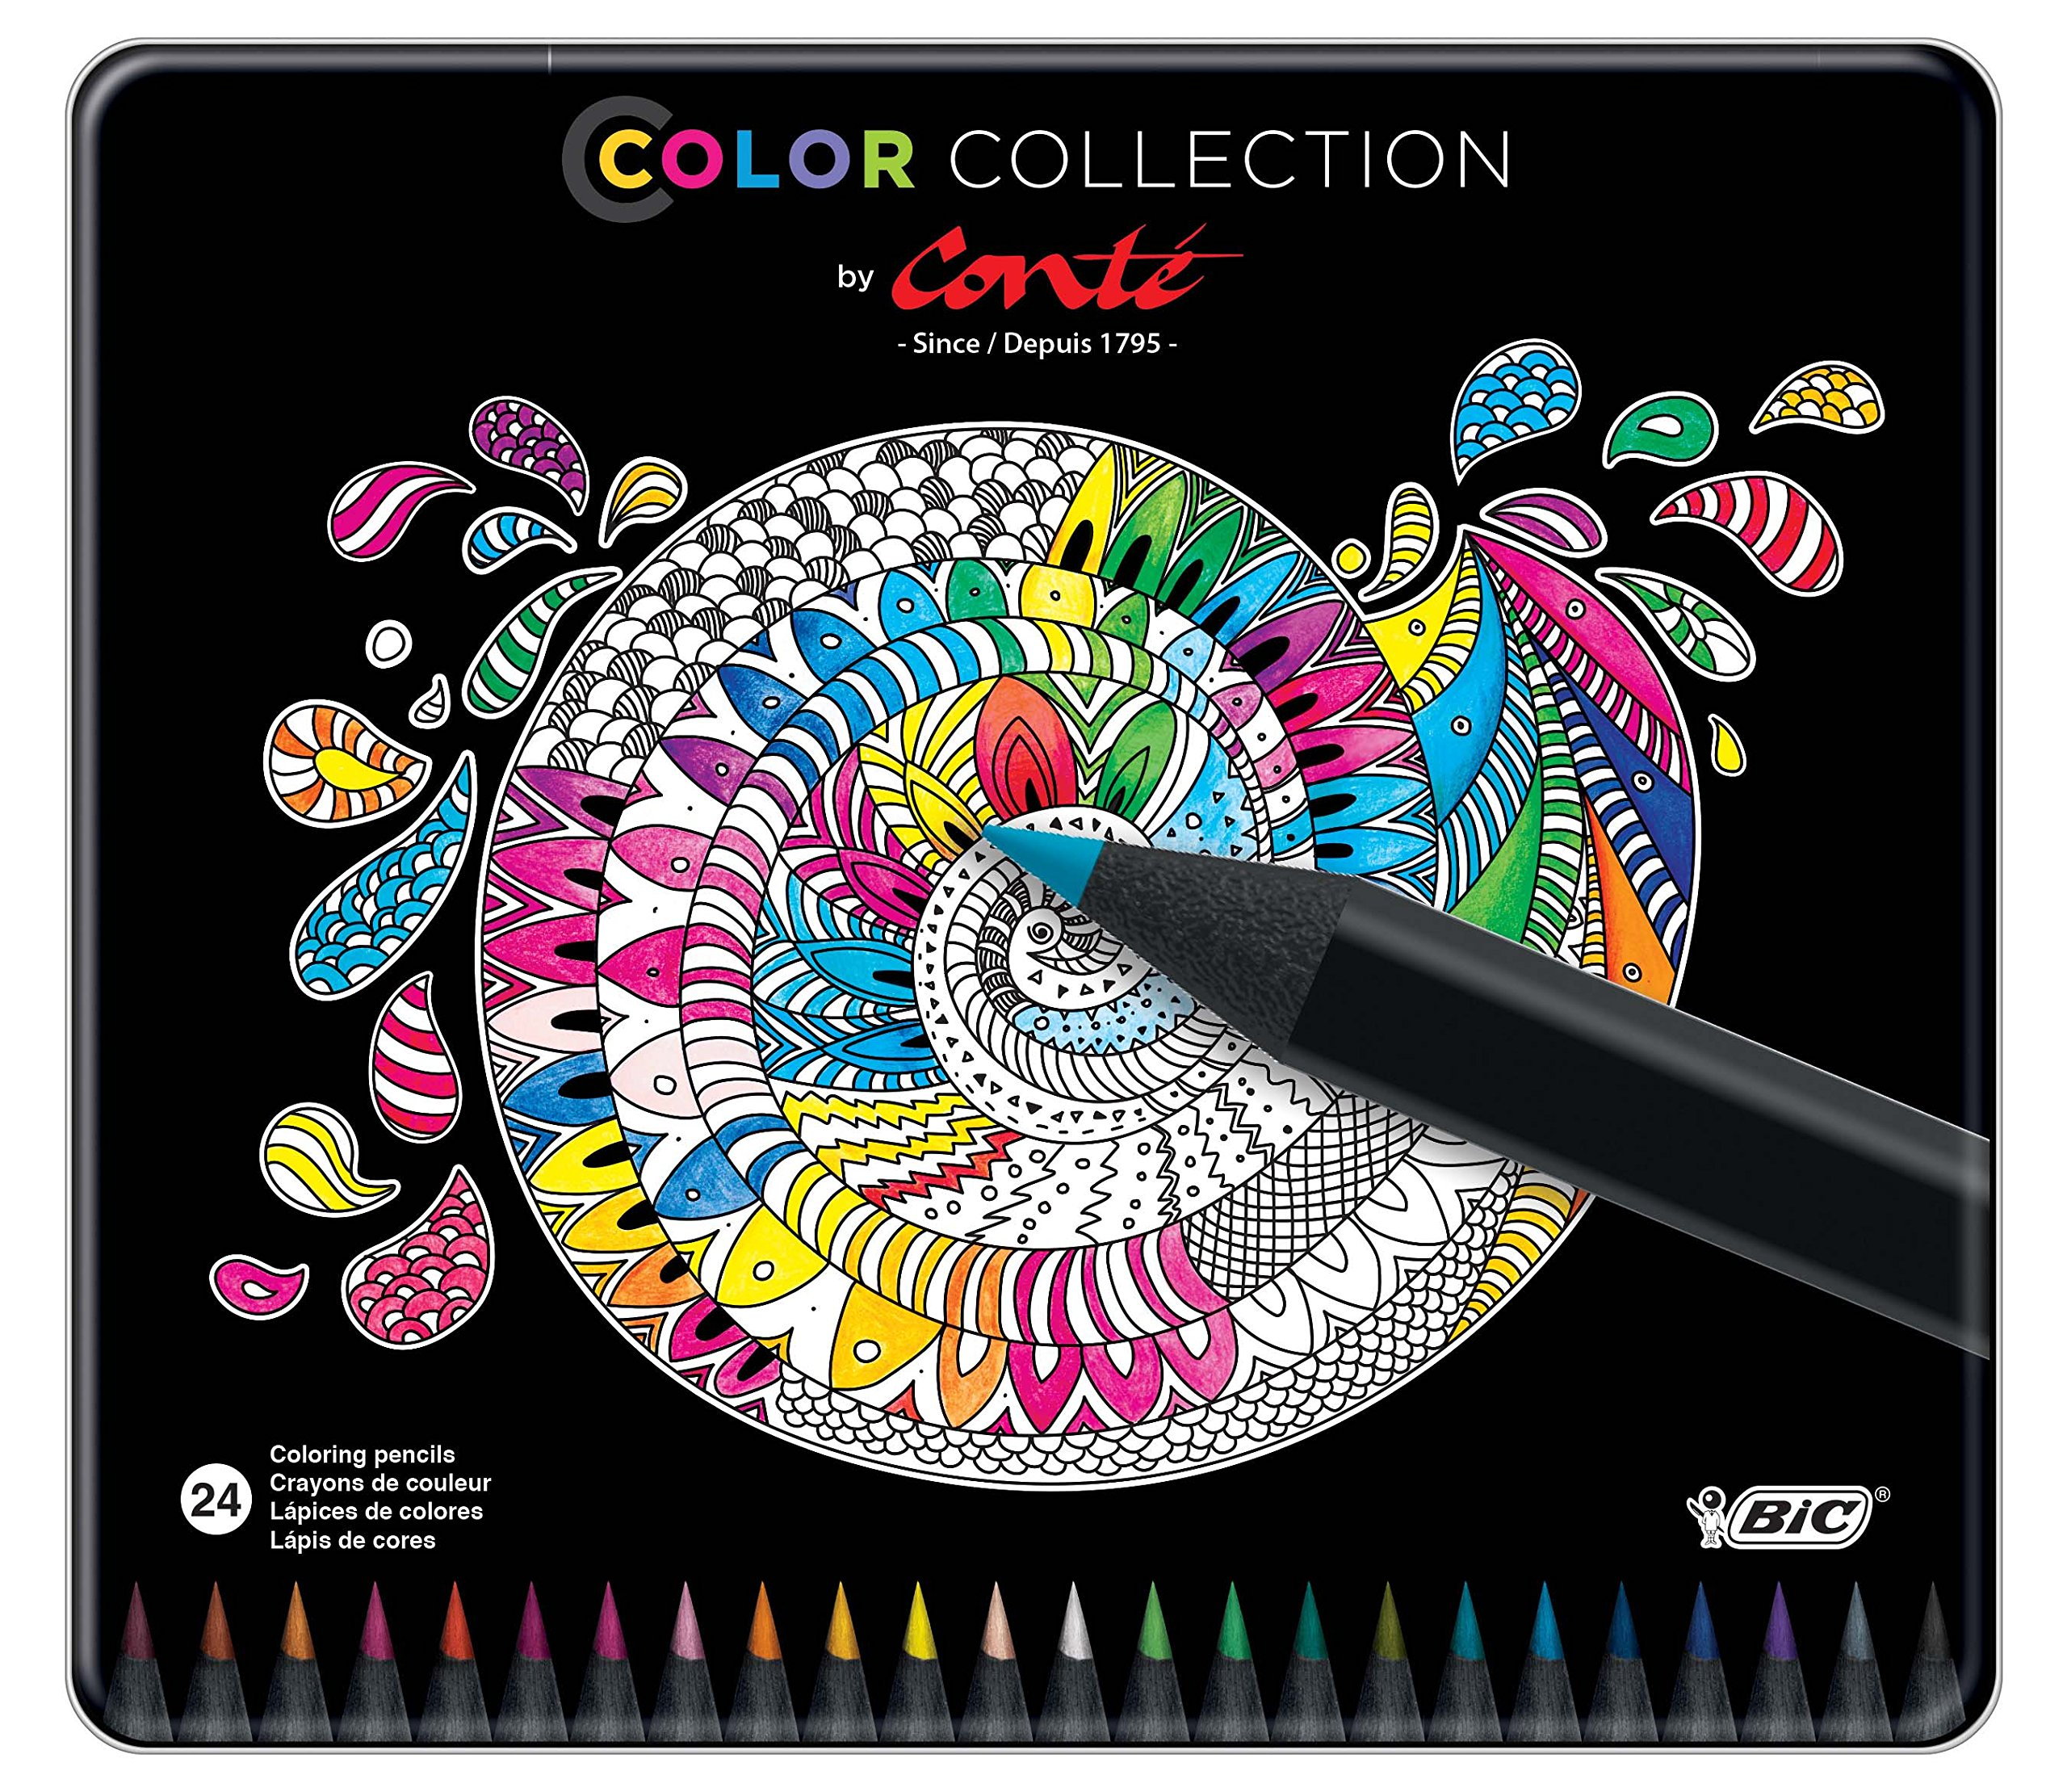 BIC Color Collection by Conte Coloring Pencil, Assorted Colors, 24-Count by BIC